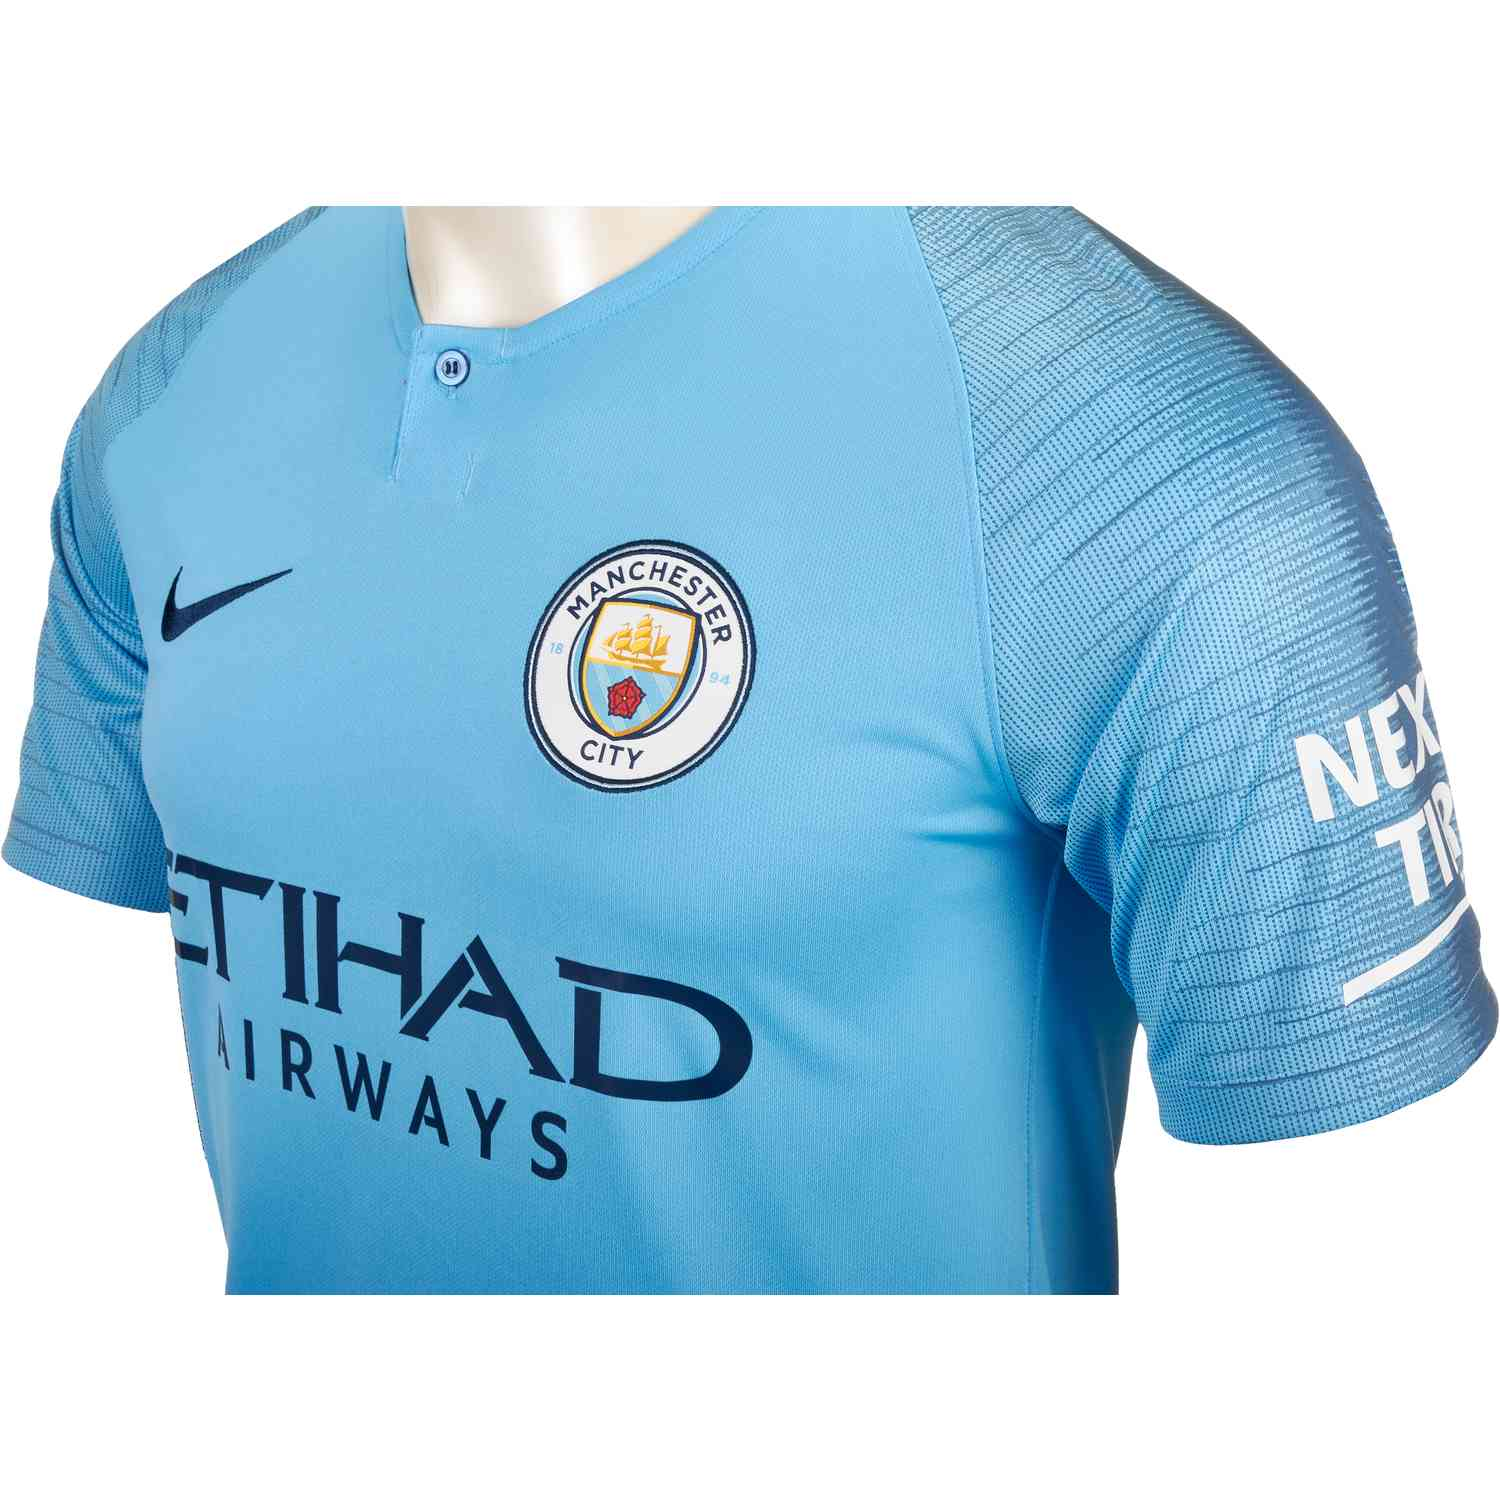 buy online 024f8 511e2 2018/19 Kids Nike Vincent Kompany Manchester City Home ...